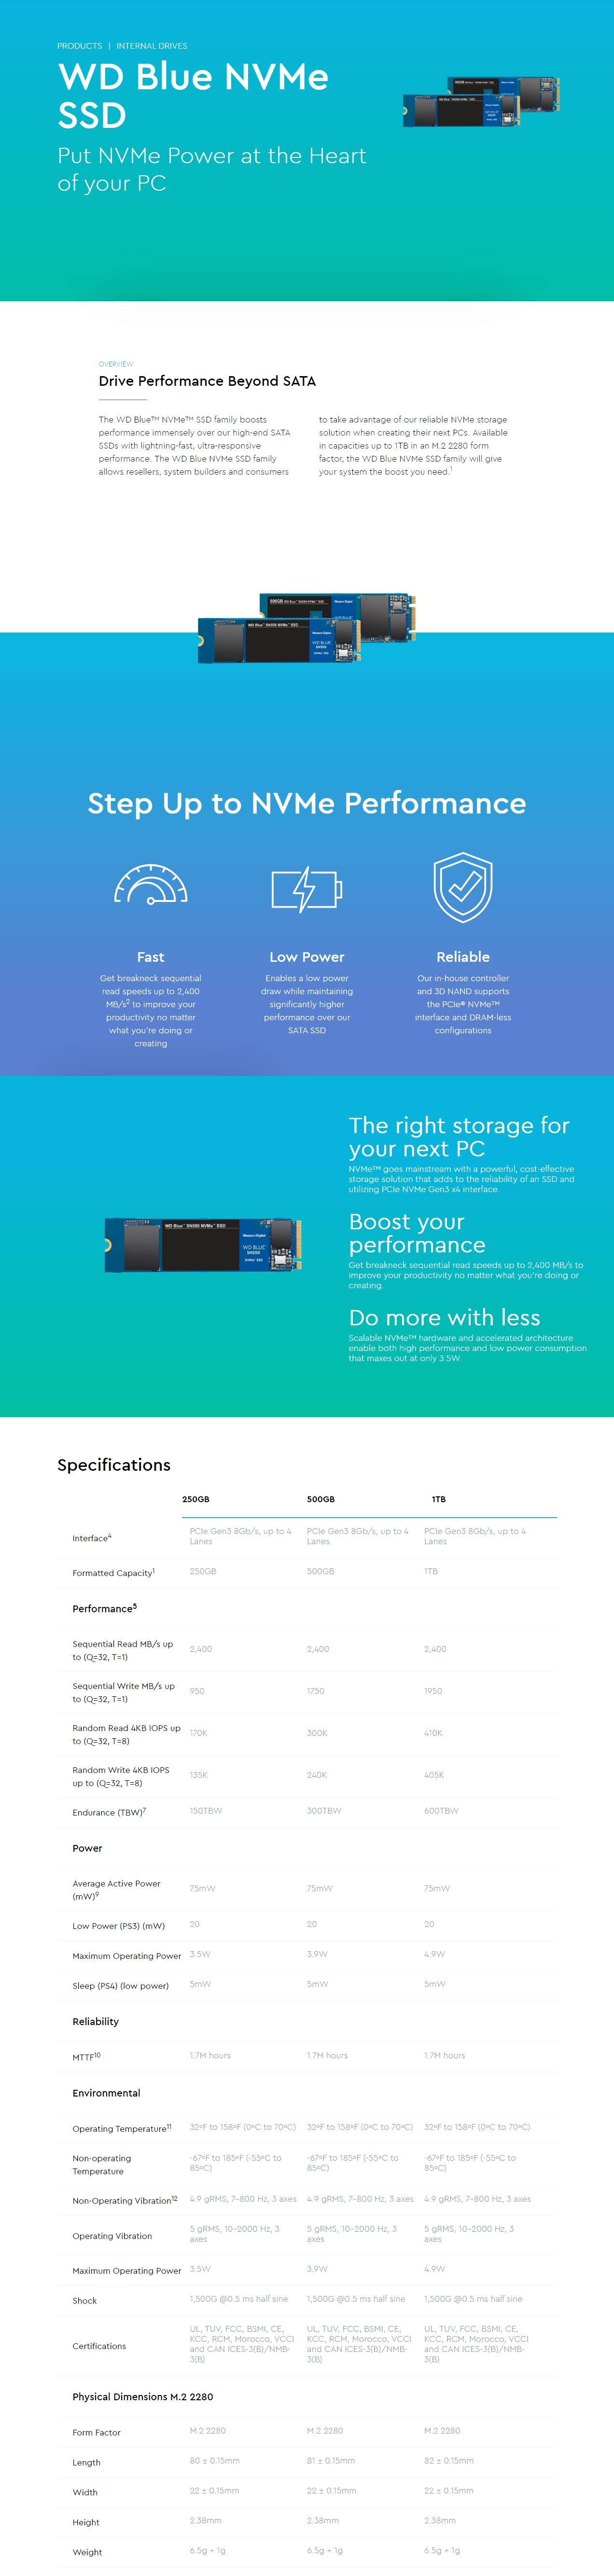 A large marketing image providing additional information about the product WD Blue SN550 250GB NVMe M.2 SSD - Additional alt info not provided